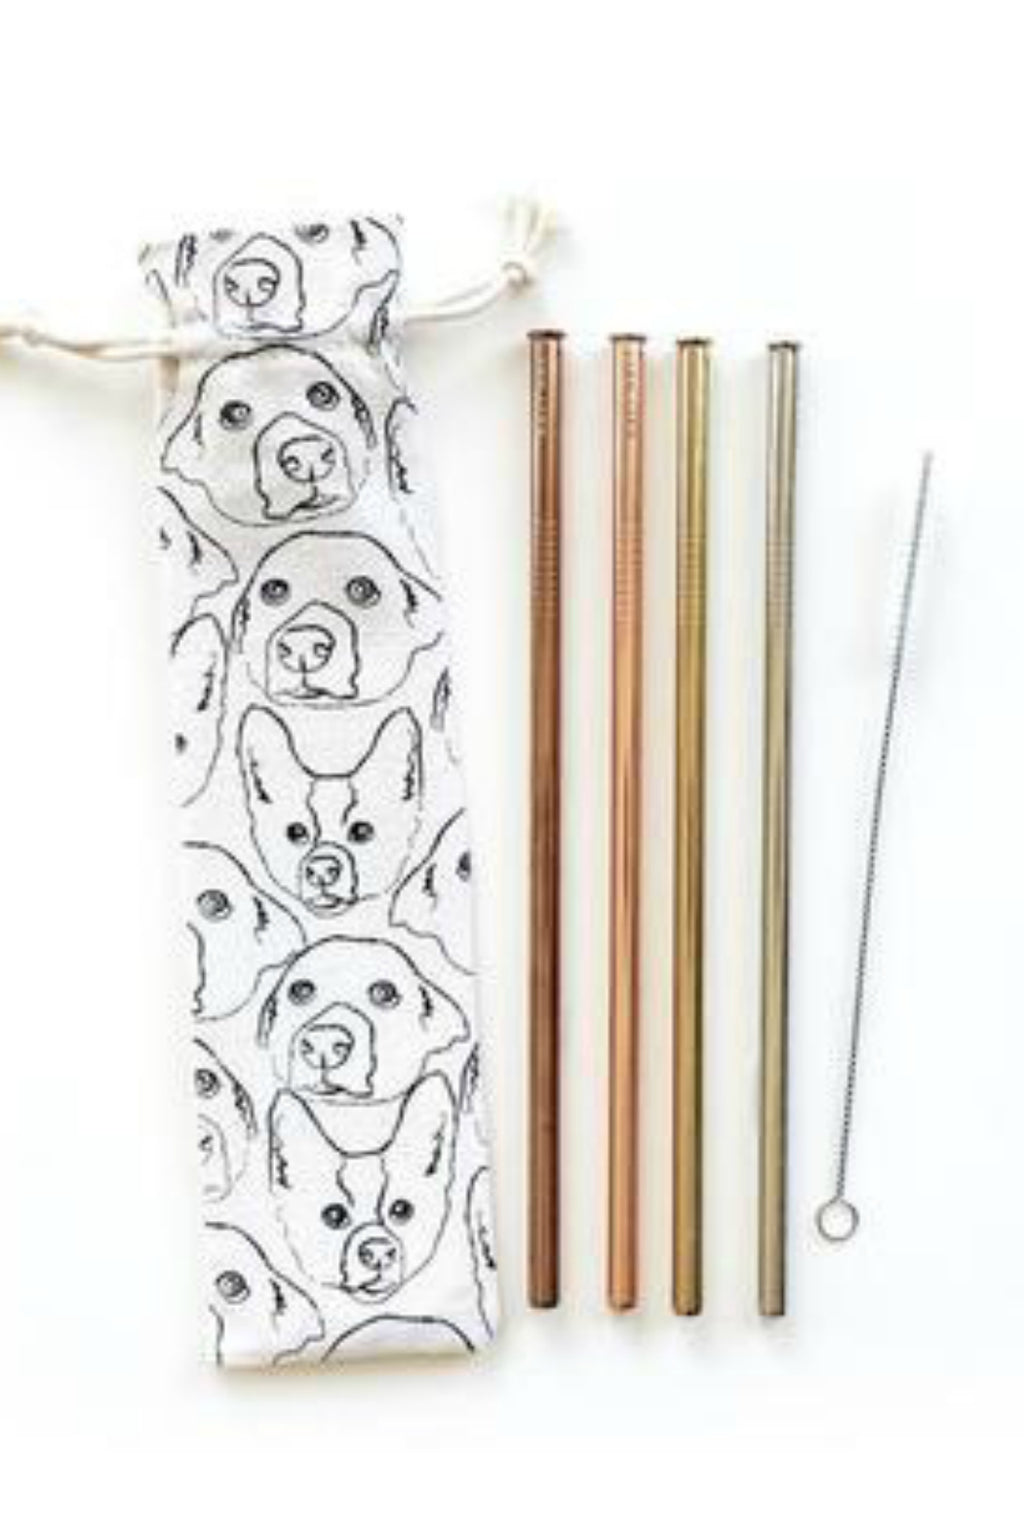 Hali Hali Reusable Straws 6-Piece Set